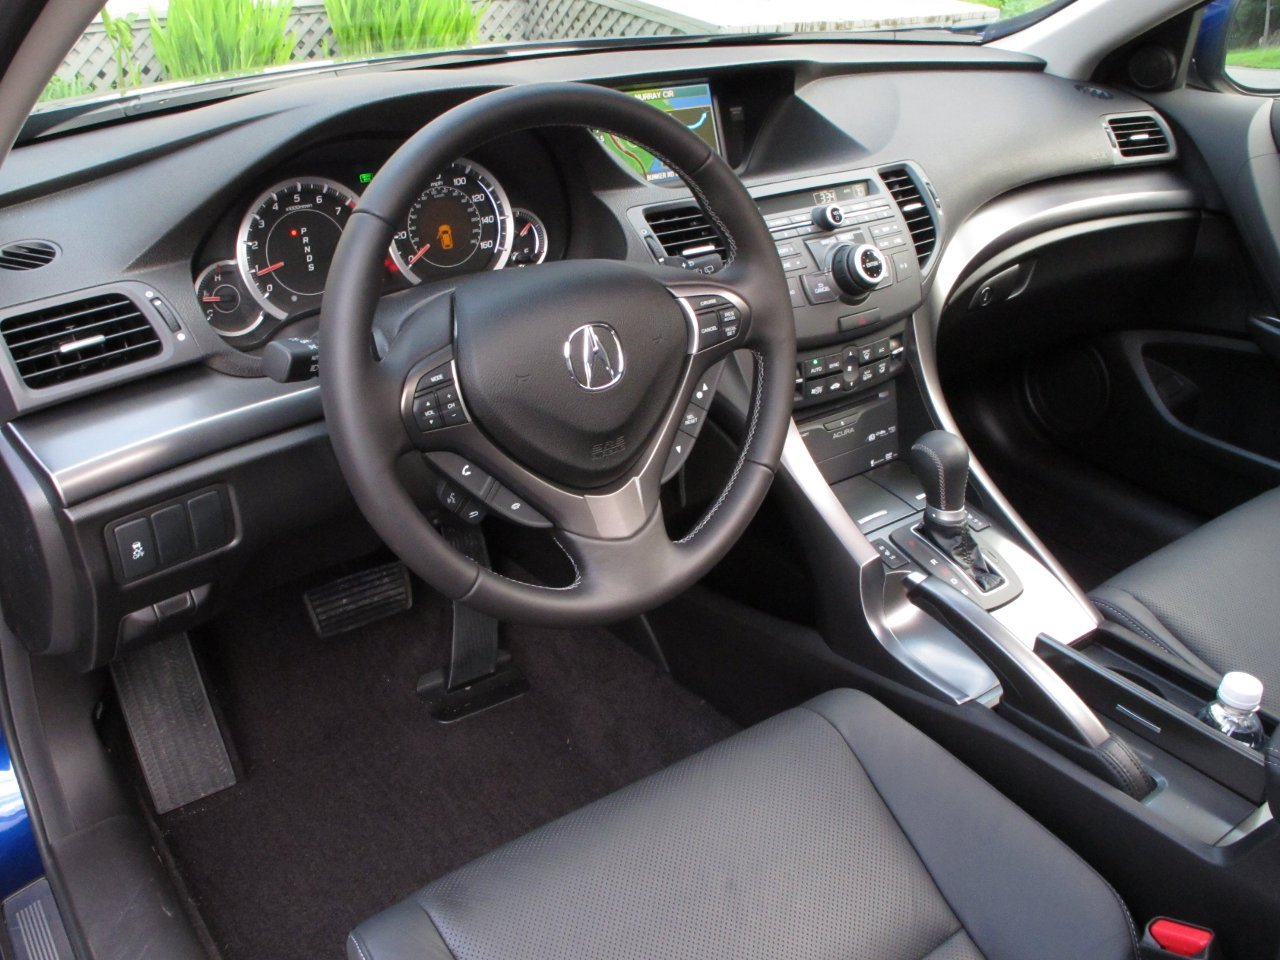 acura tsx tech package-pic. 1